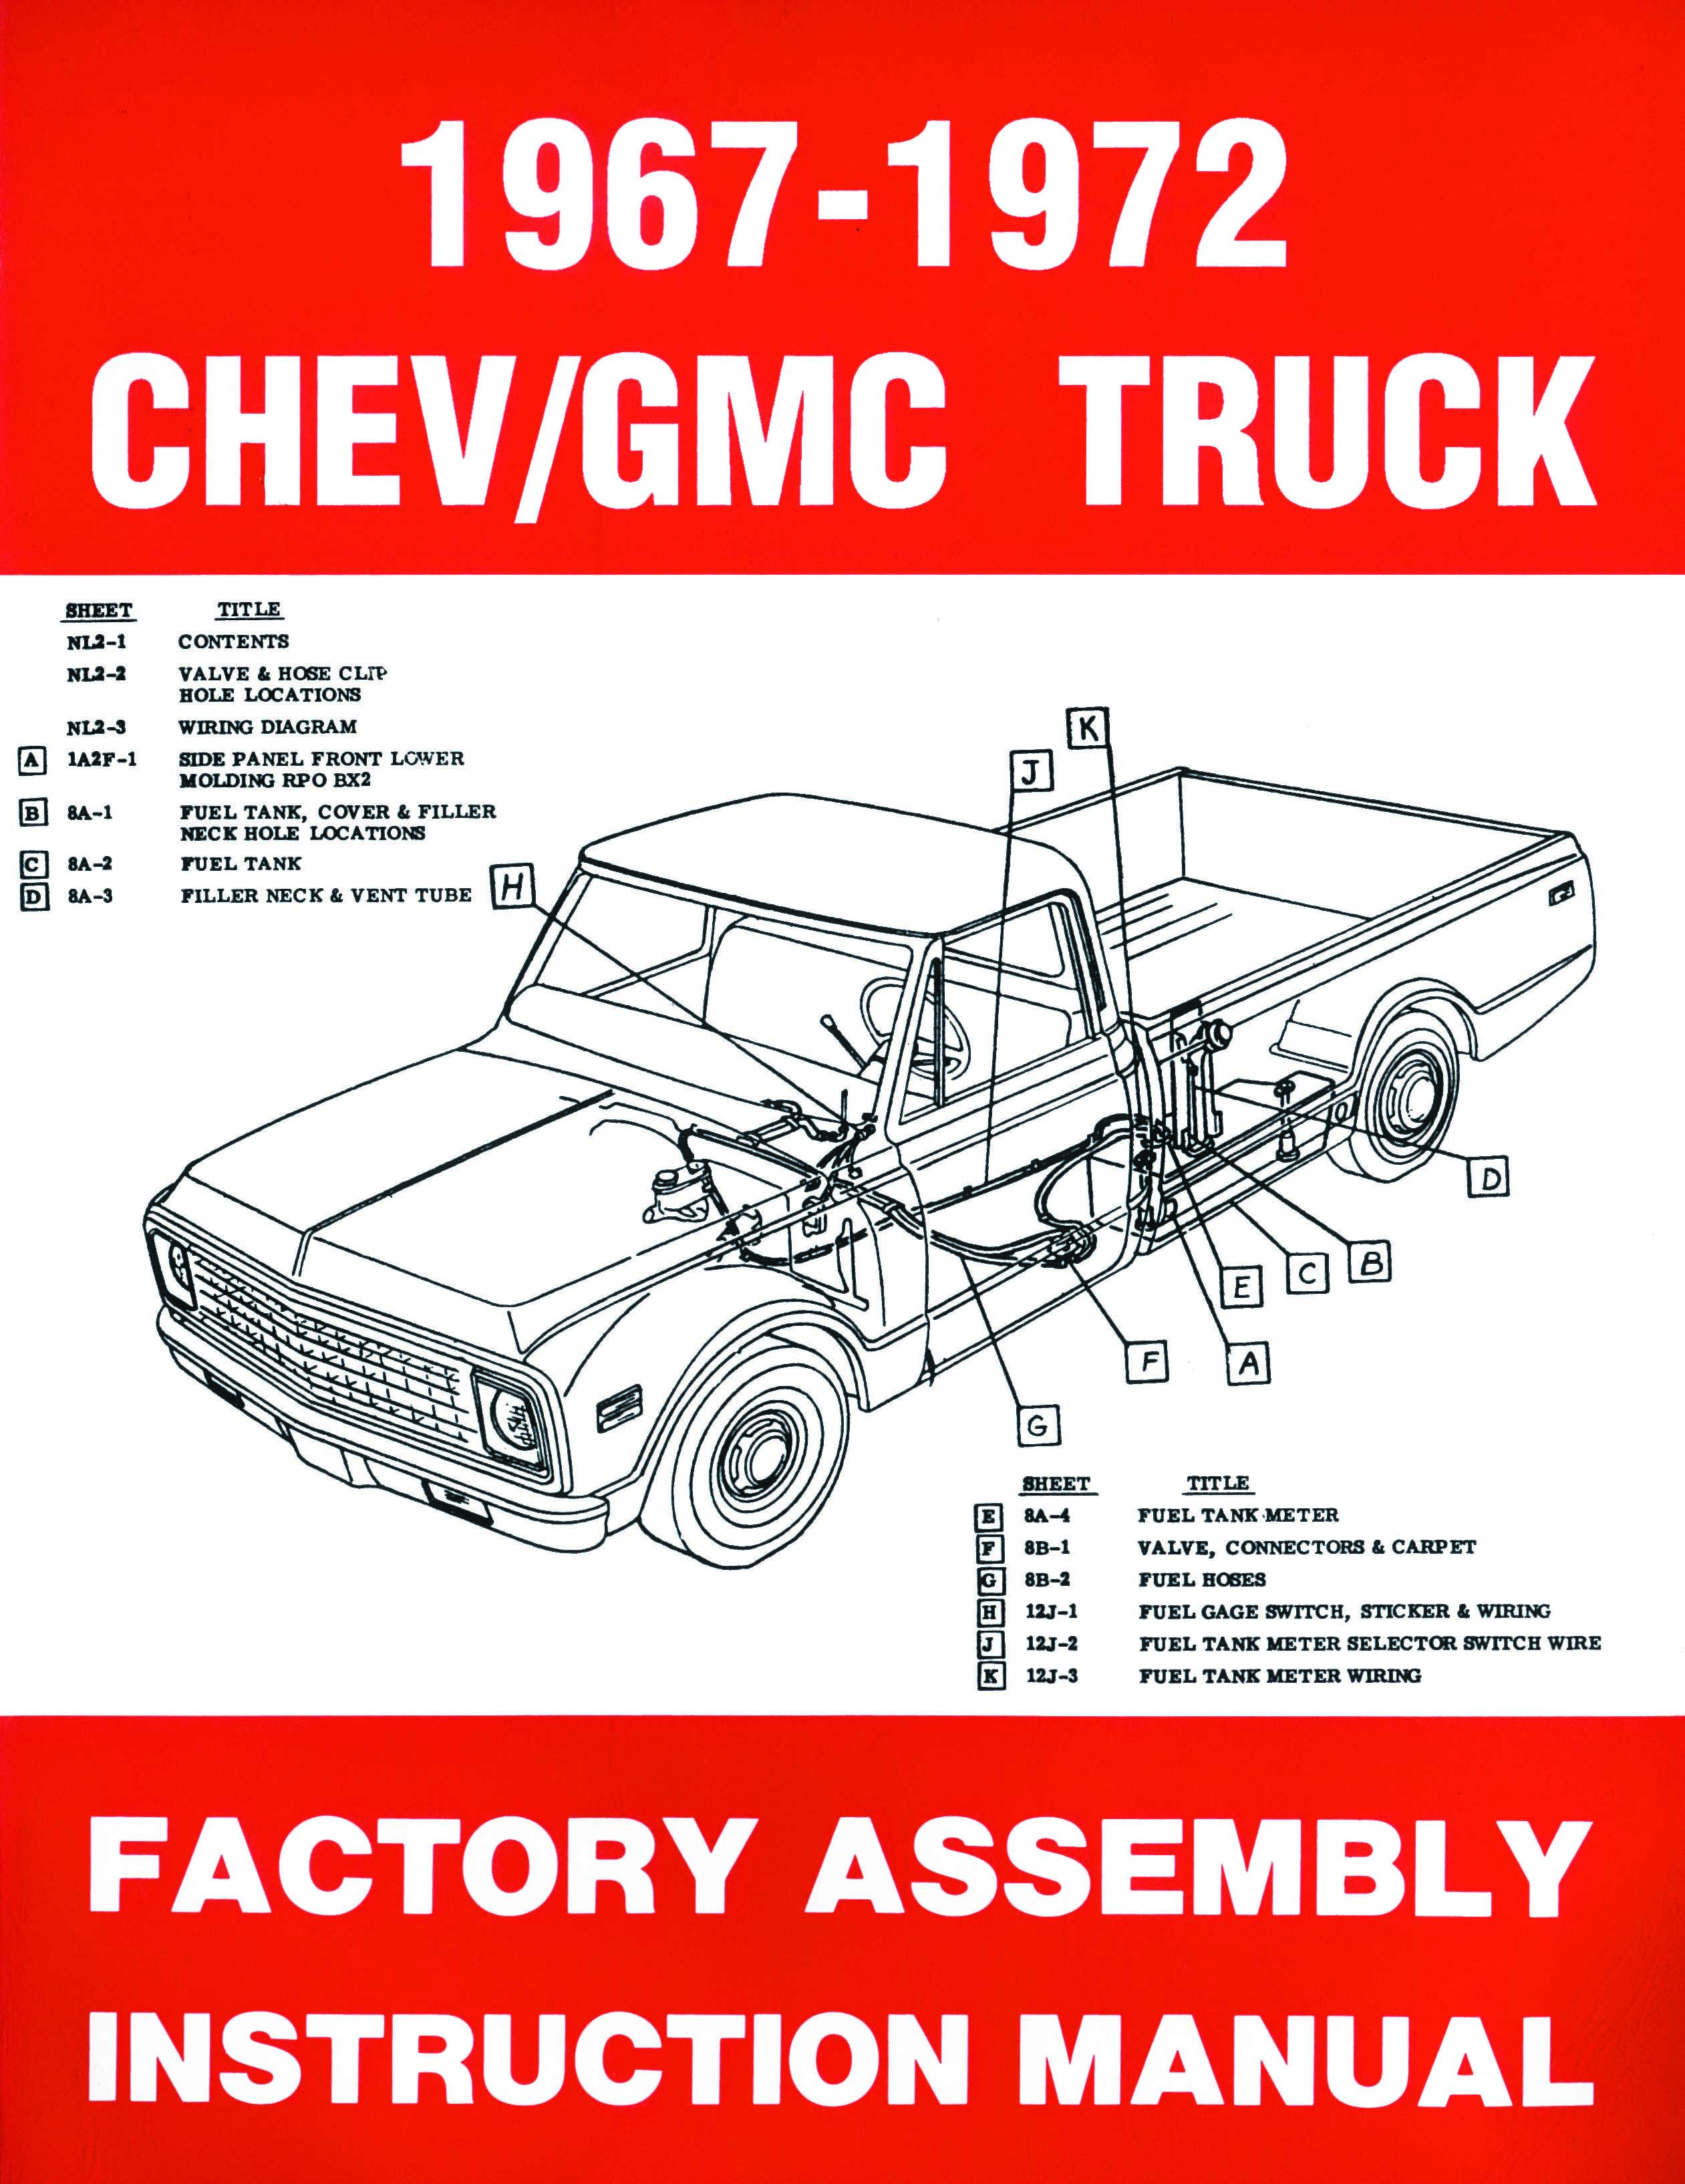 1967, 1968, 1969, 1970, 1971, 1972 CHEVROLET AND GMC PICKUP TRUCK ASSEMBLY MANUAL